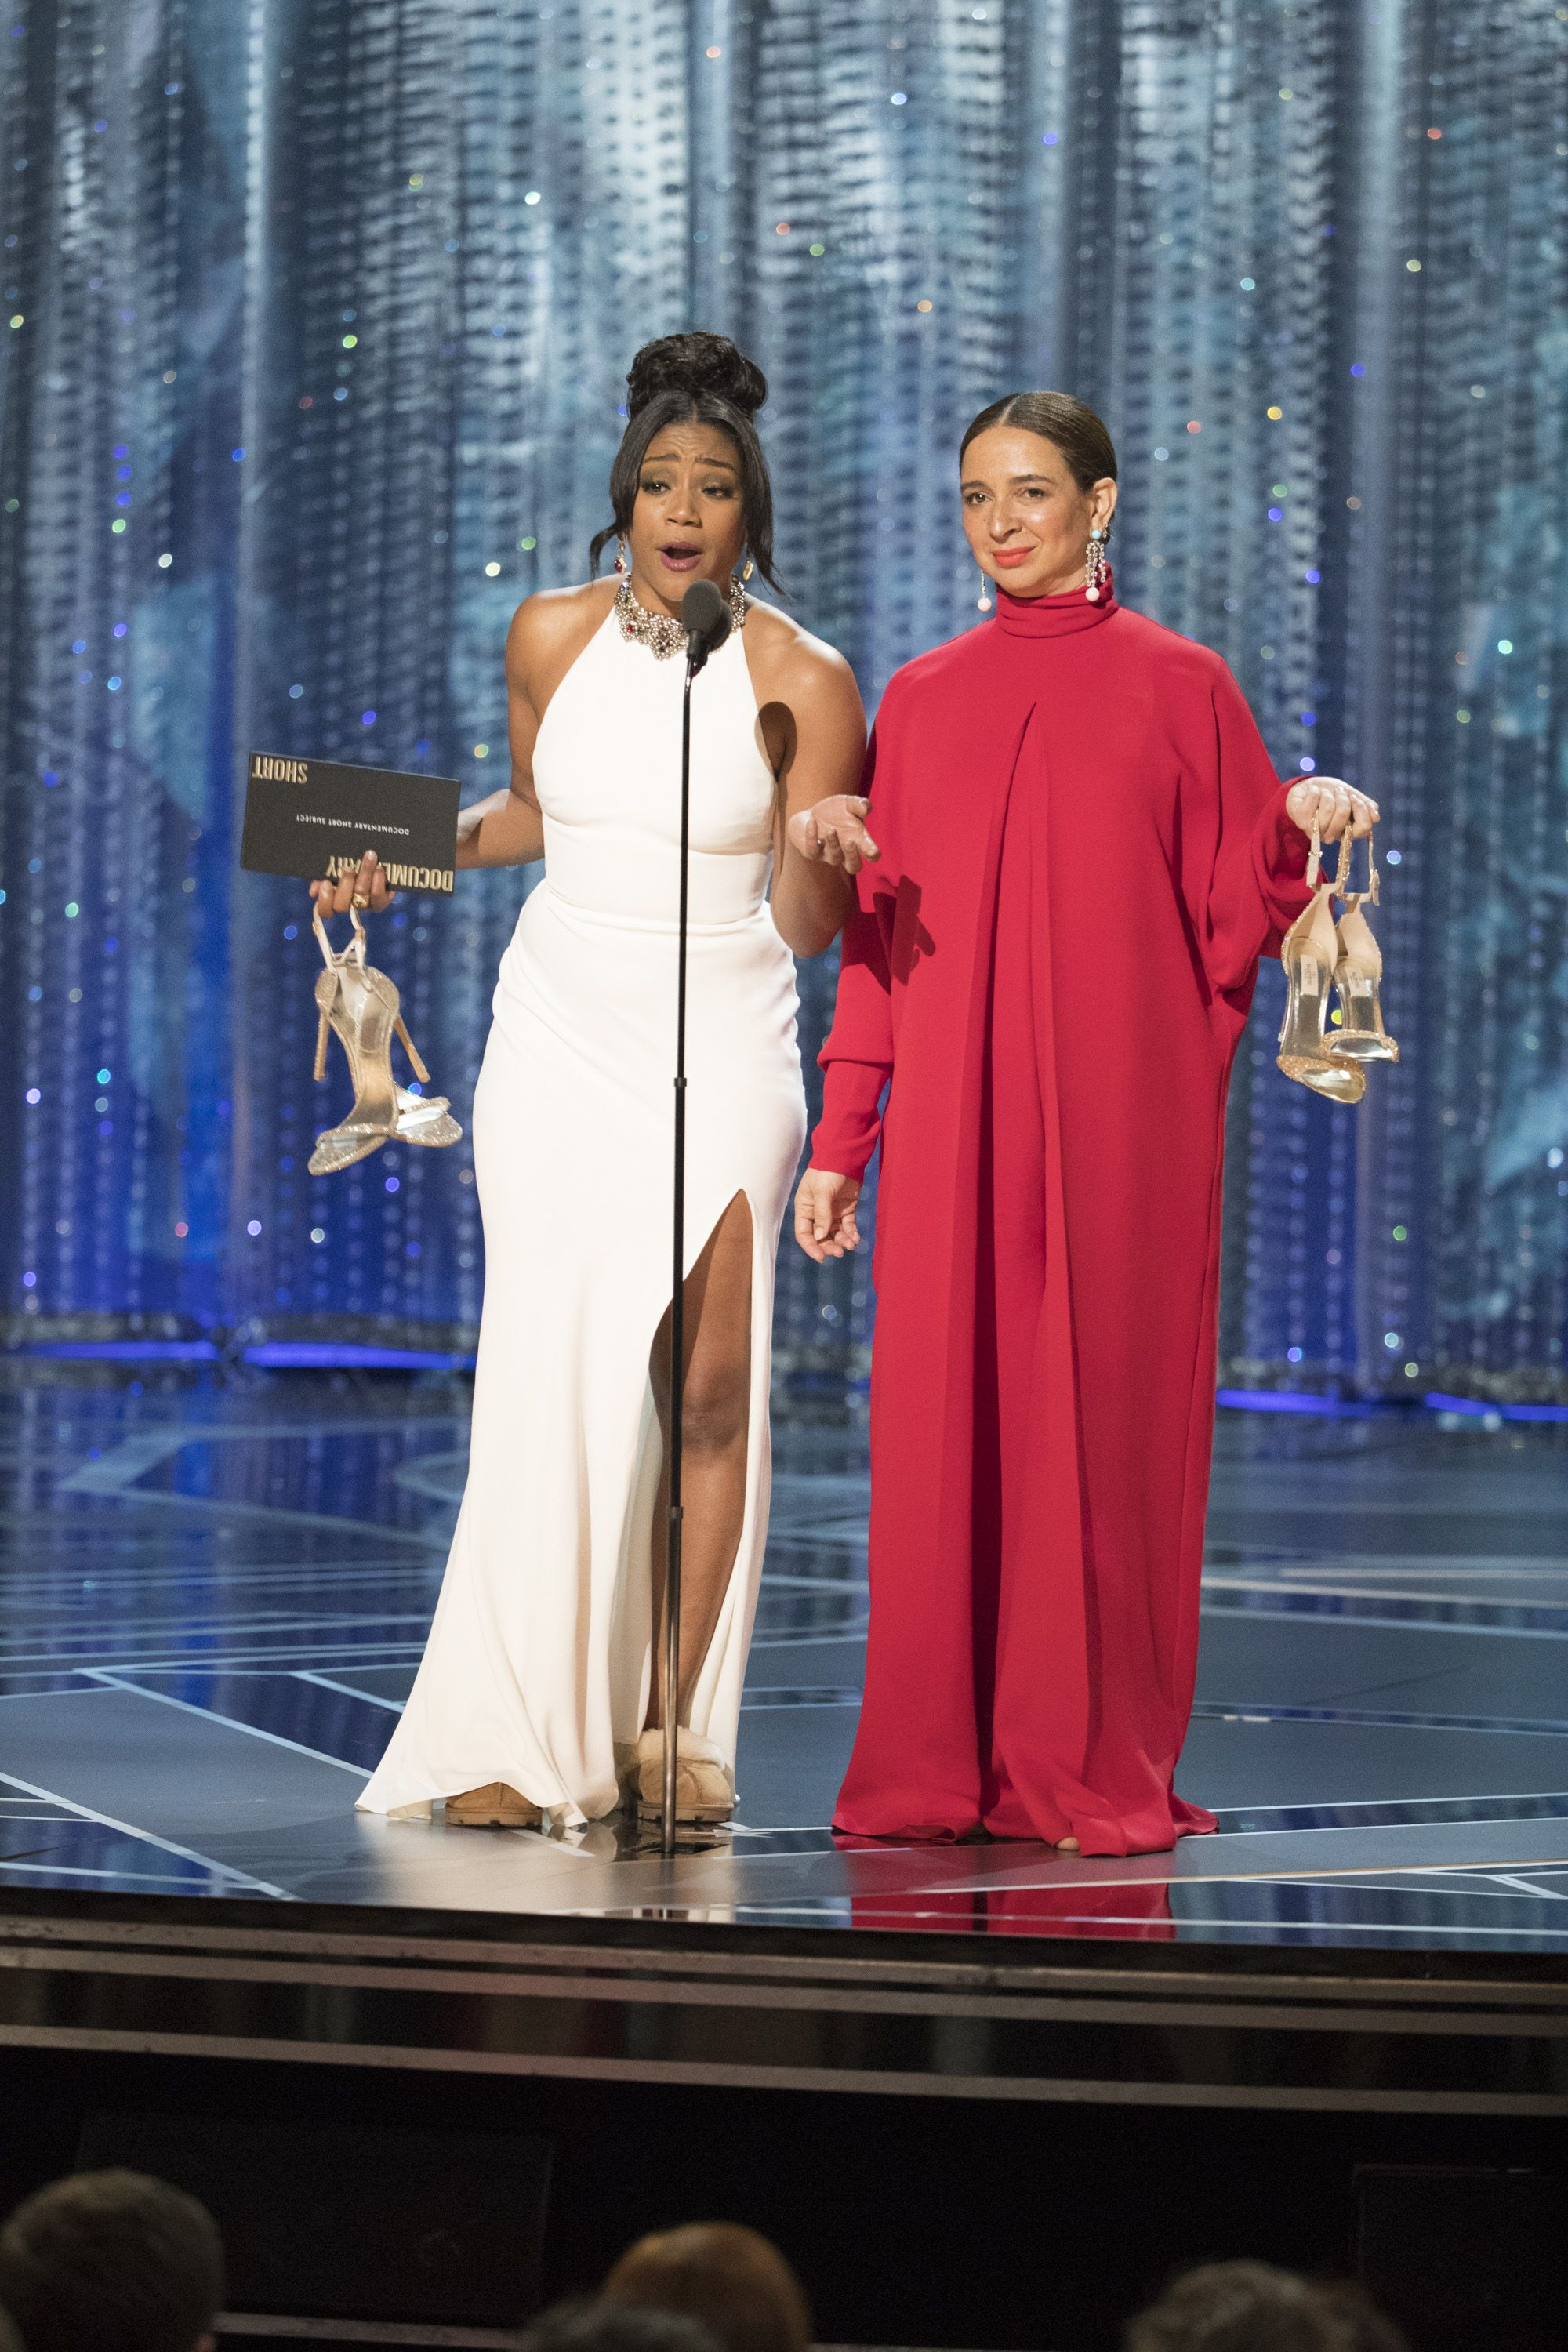 Tiffany Haddish When Haddish went on stage to present an award at the 2018 Oscars, she swapped her heels for a pair of UGGs and won the admiration of the internet . The shoes peeked out from underneath her Alexander McQueen dress and, say no more, we're buying them for $83.